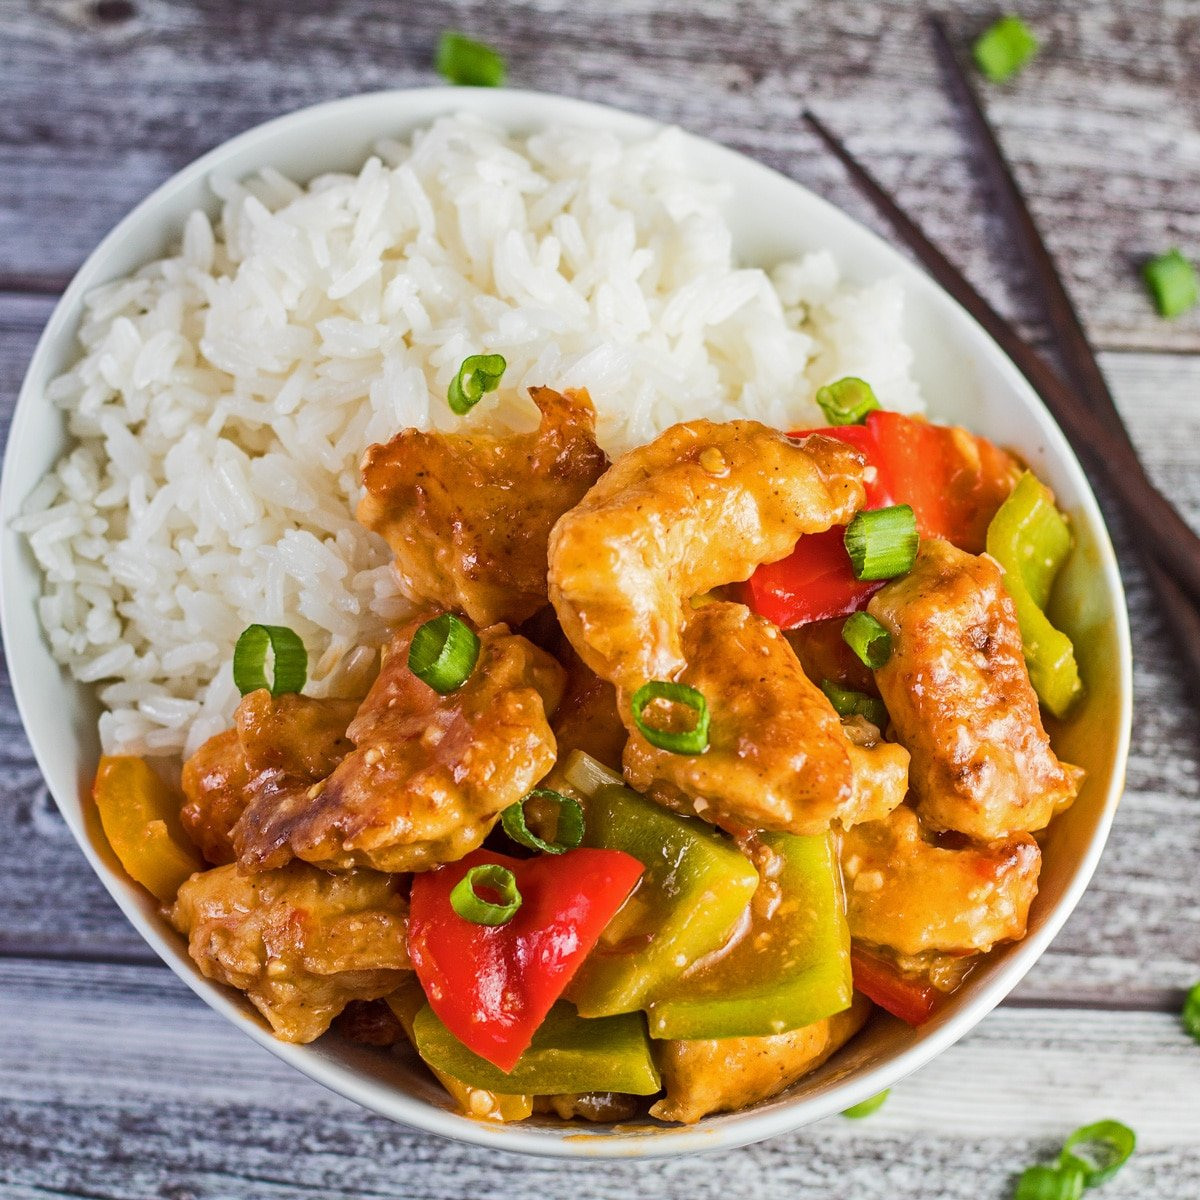 Chicken manchurian served on rice in a white bowl.